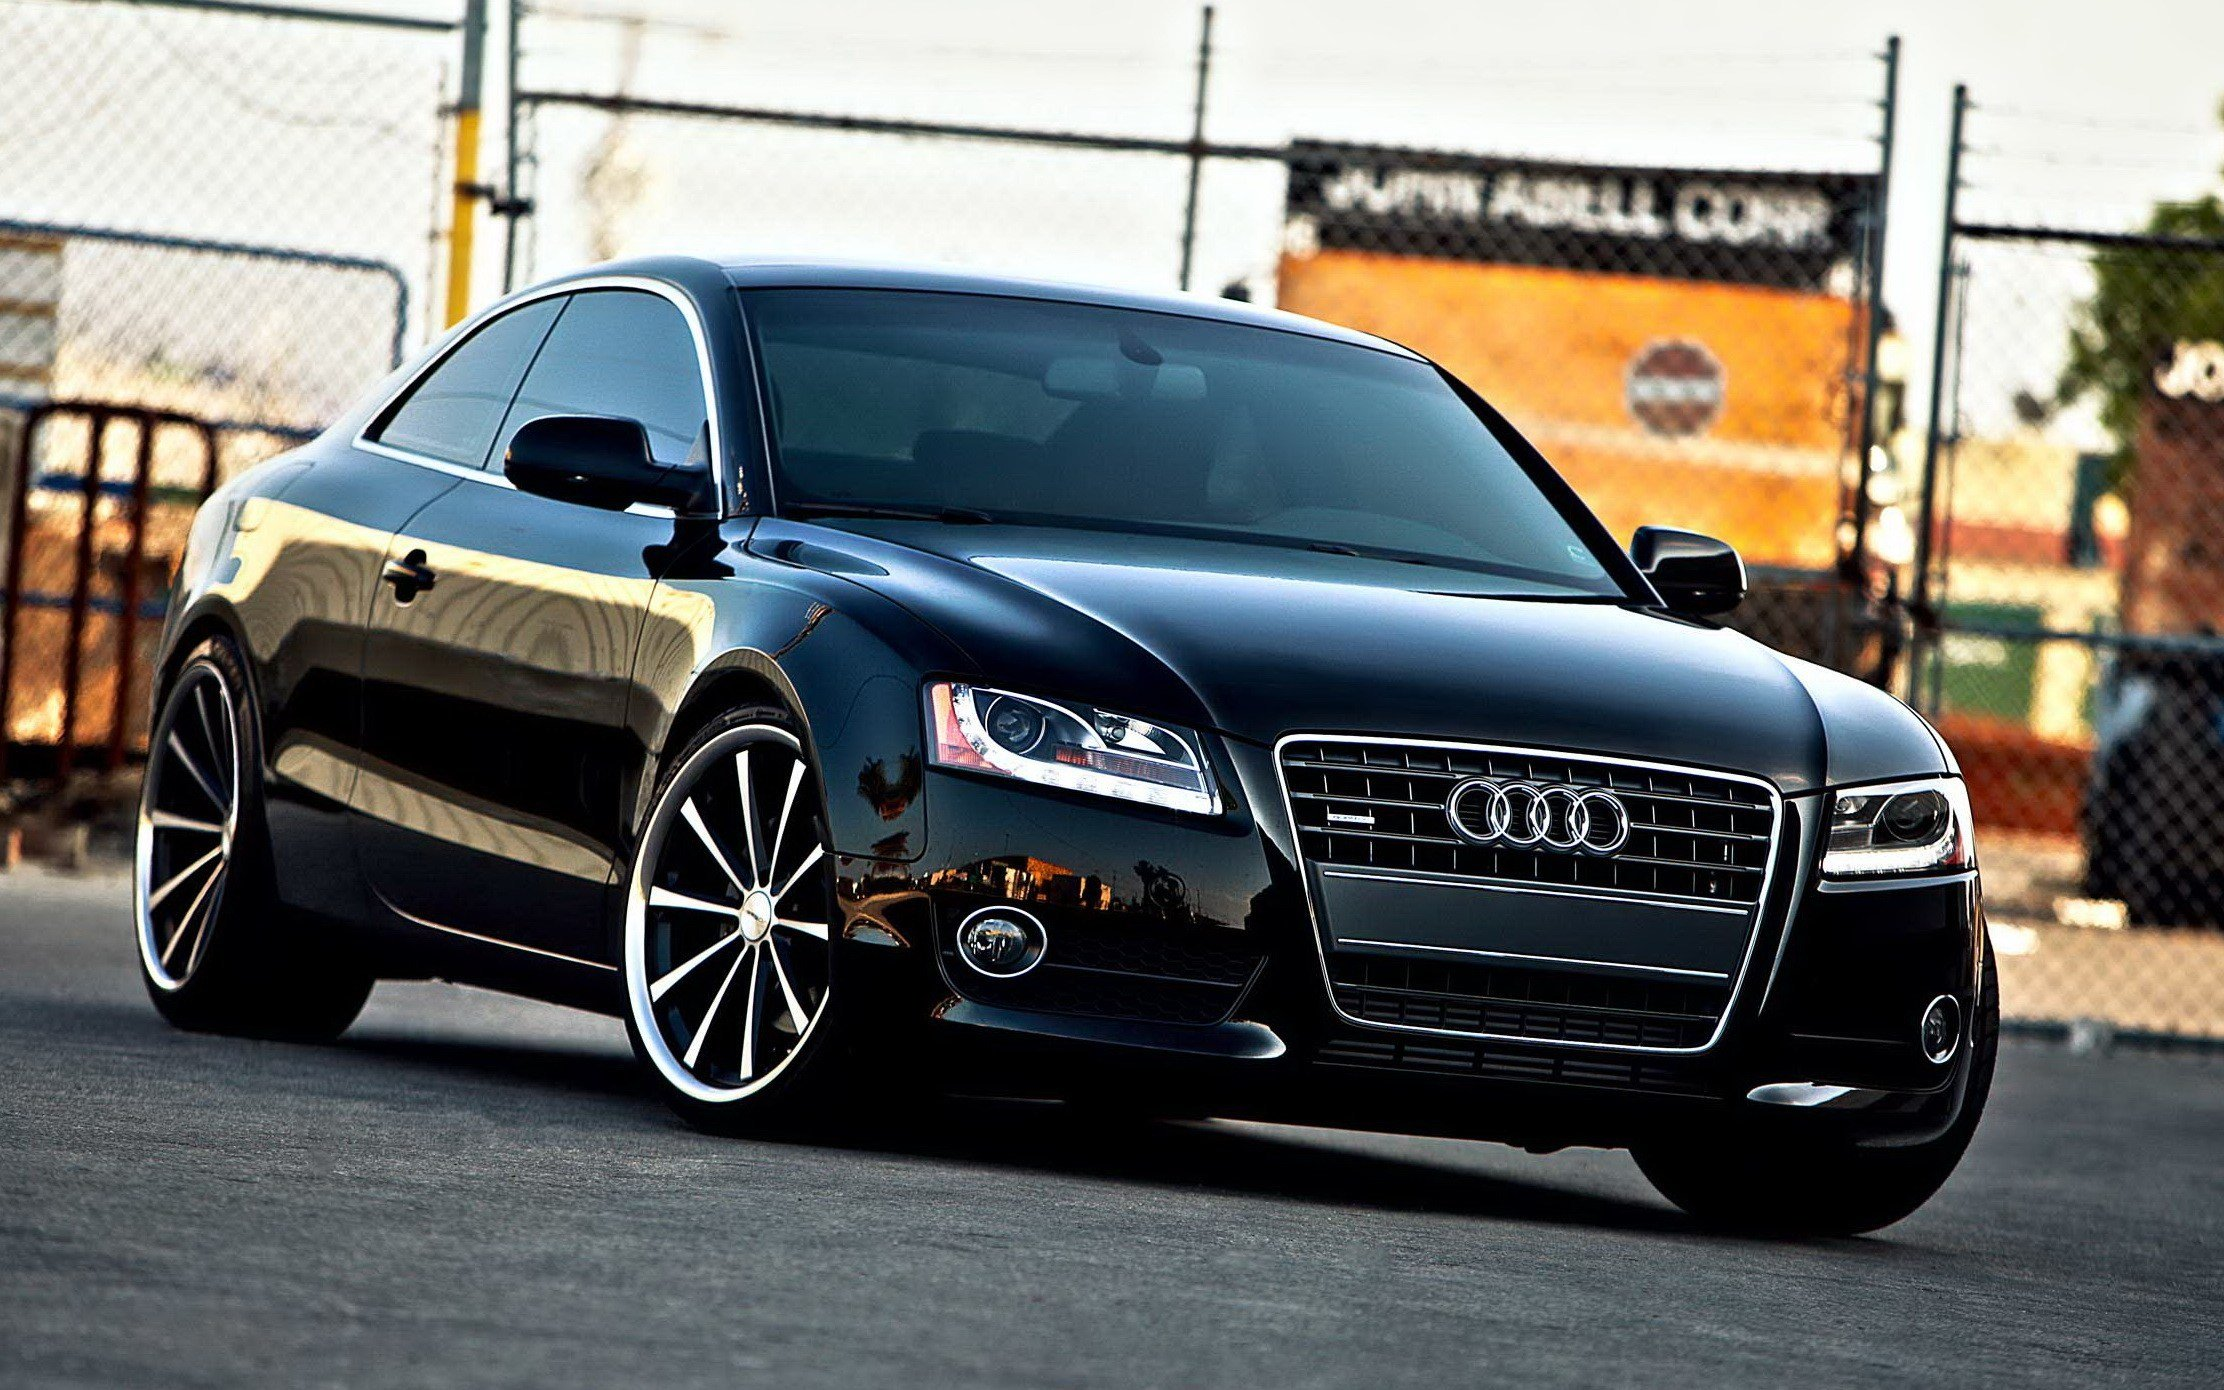 Latest Audi A5 2015 Blue Hd Car Wallpapers Gallery Iphone Tsdk Free Download